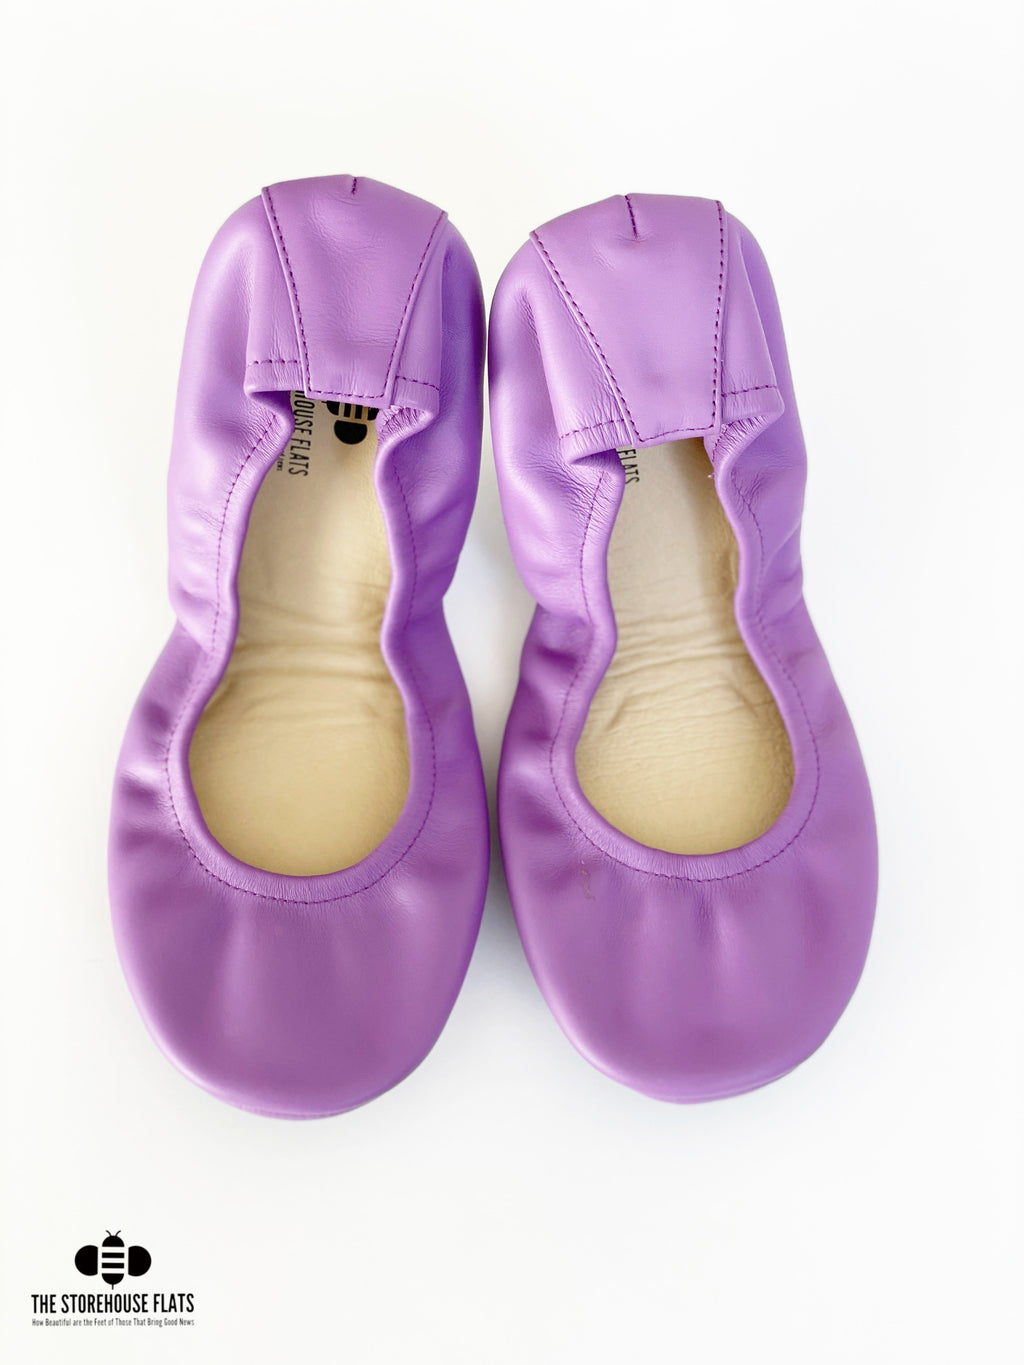 PURPLE CLASSIC | APRIL PREORDER - The Storehouse Flats